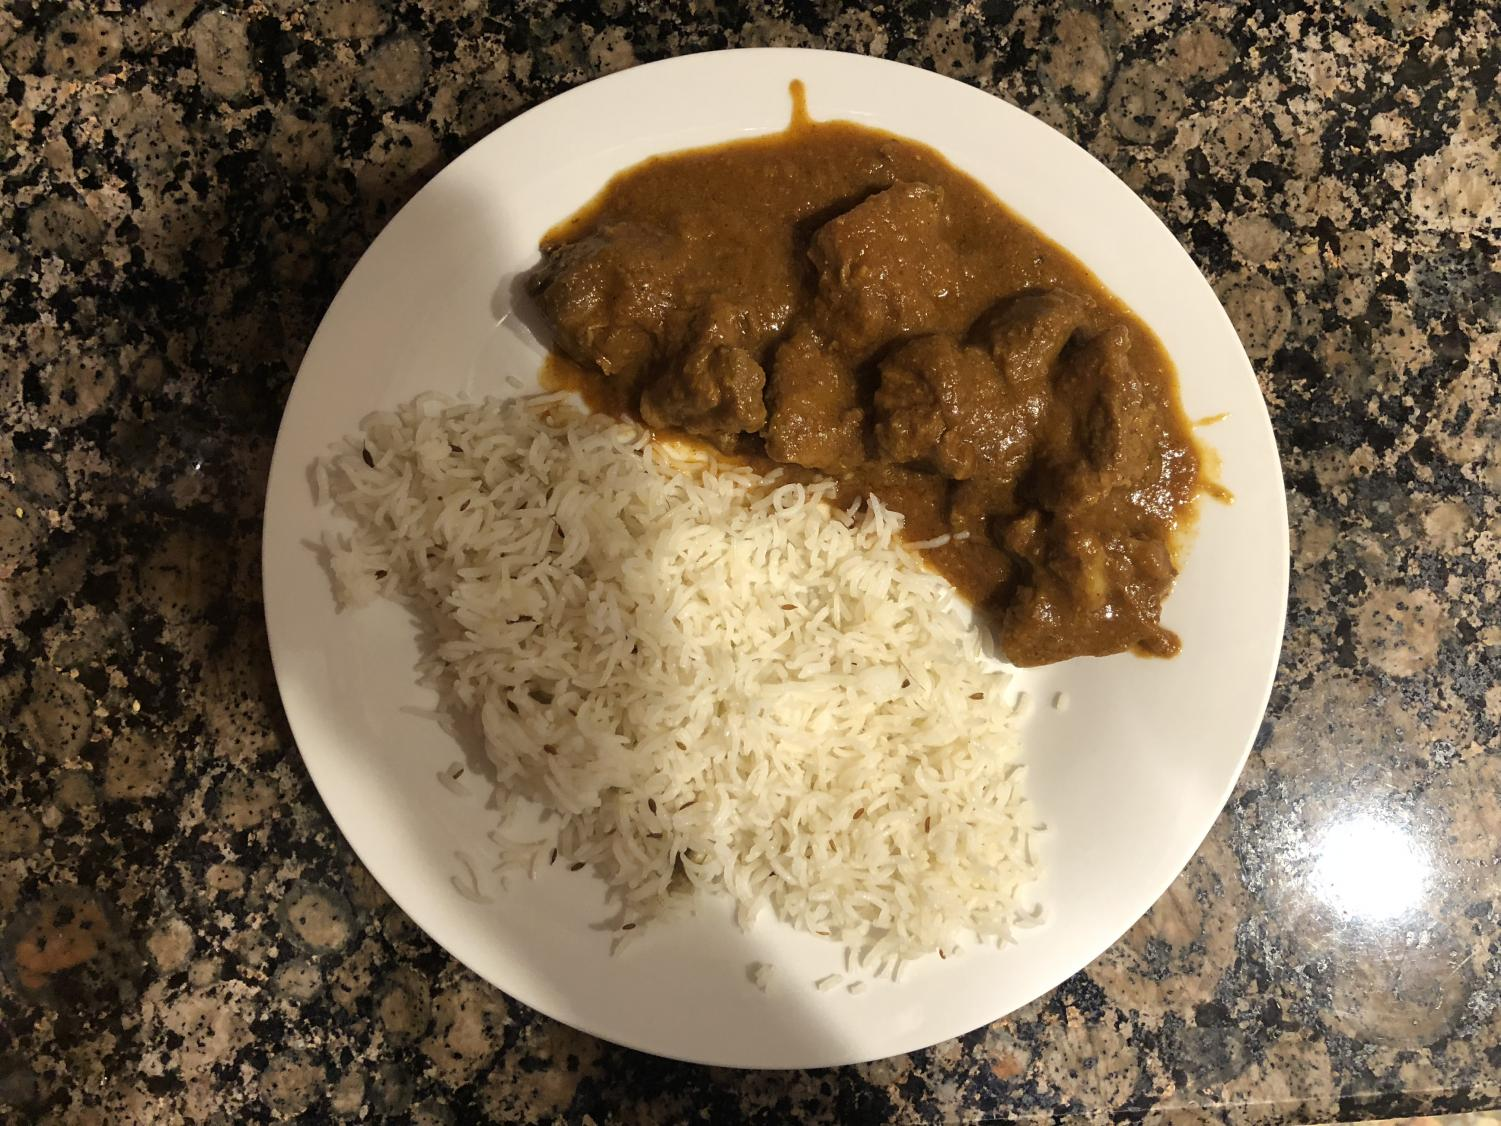 The+Lamb+Roganjosh+is+a+typical+northern+indian+dish+and+one+of+the+restaurants+most+popular+dishes